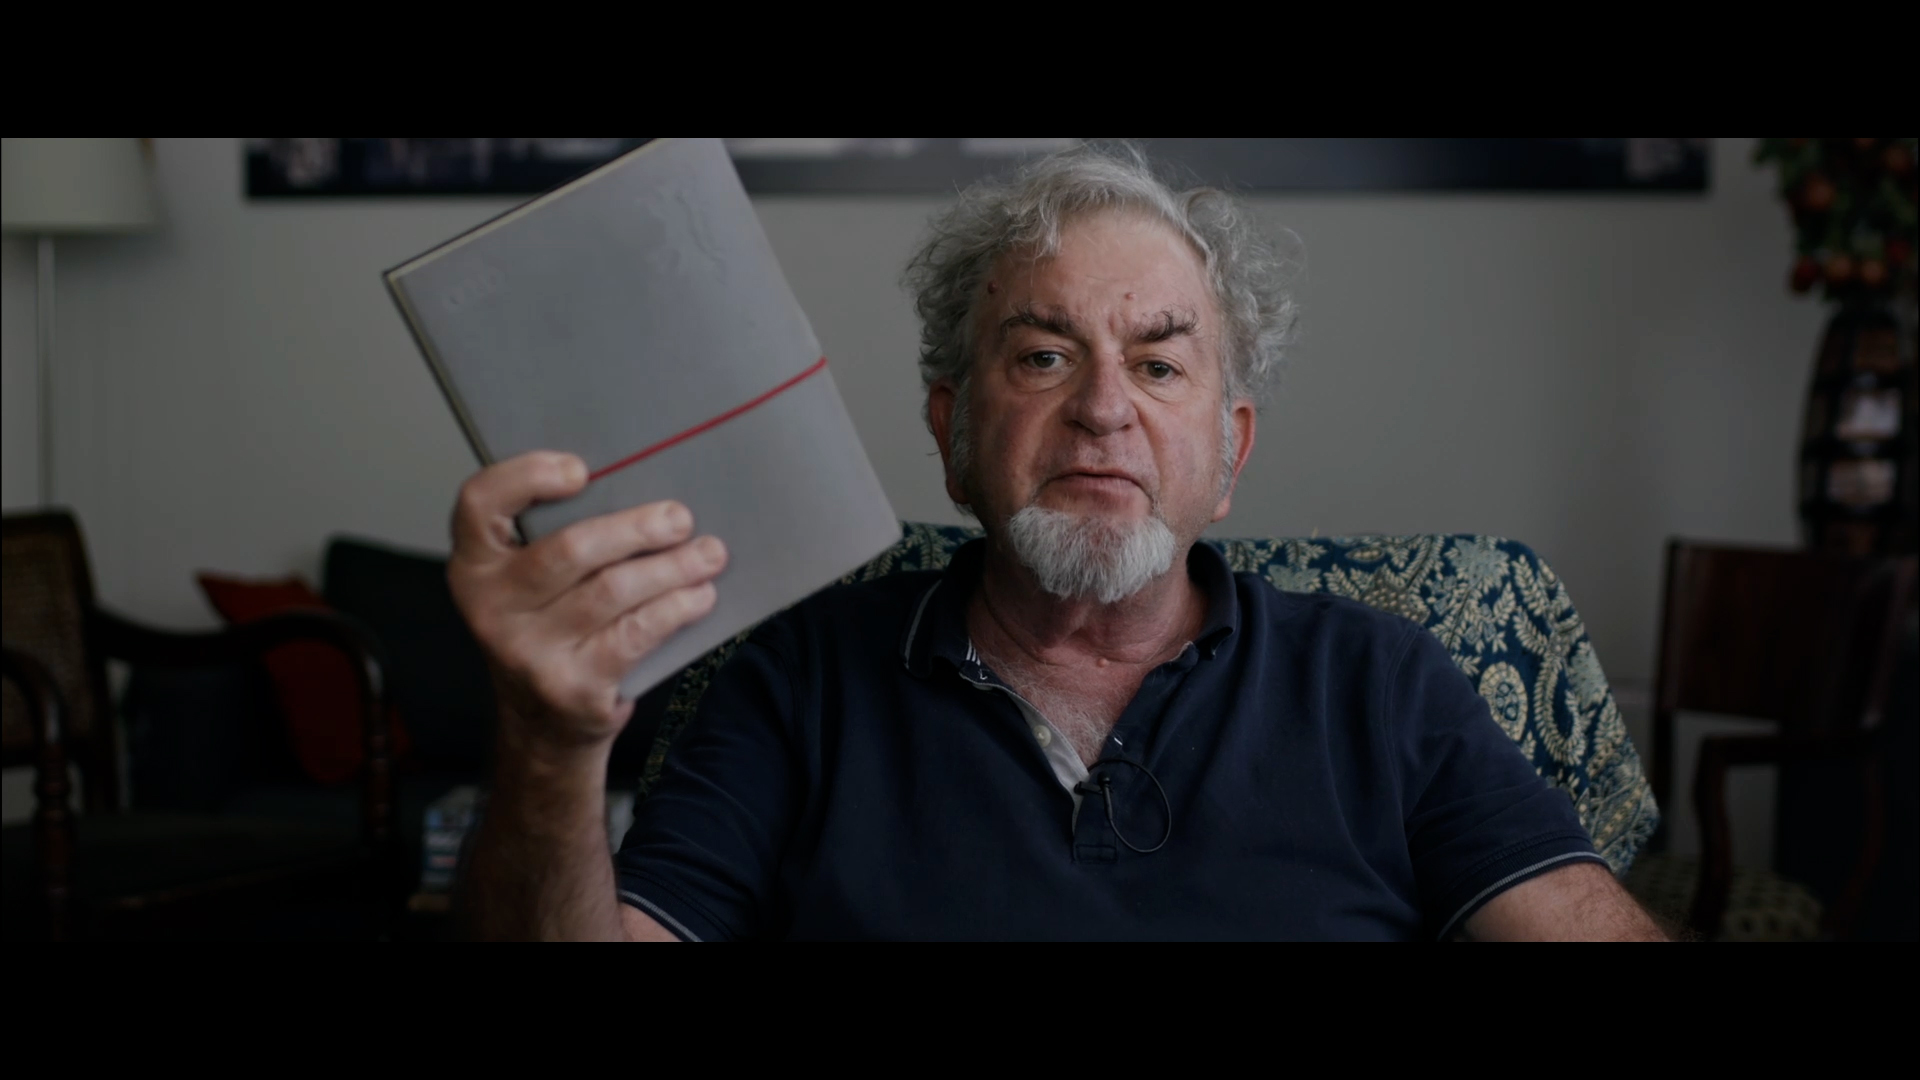 A still from The First 54 Years. A man holding a book up to the camera.